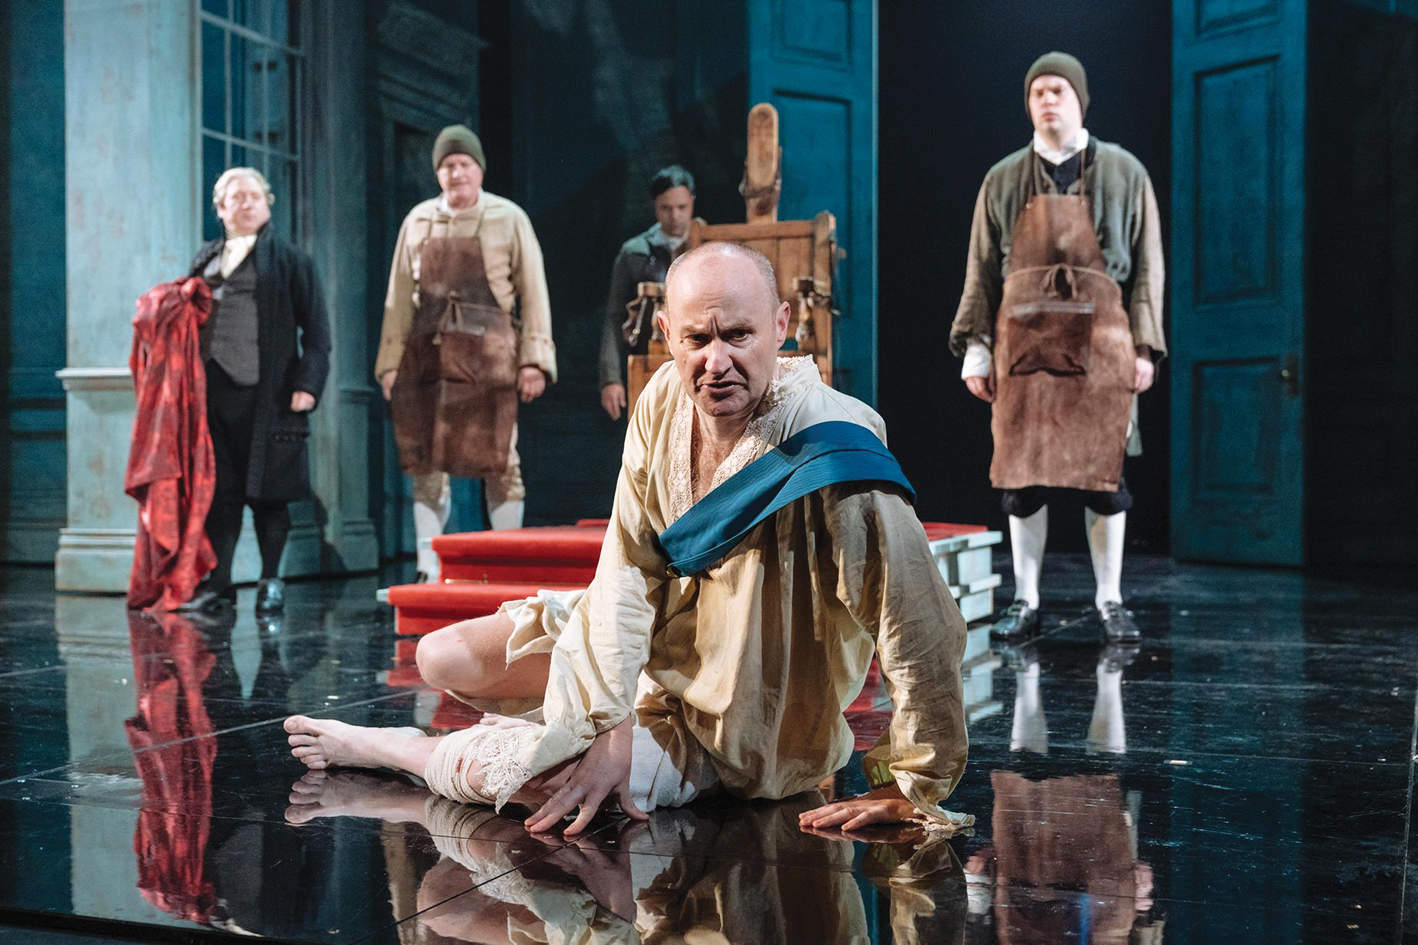 Alan Bennett's play The Madness of George III has new relevance in 2018